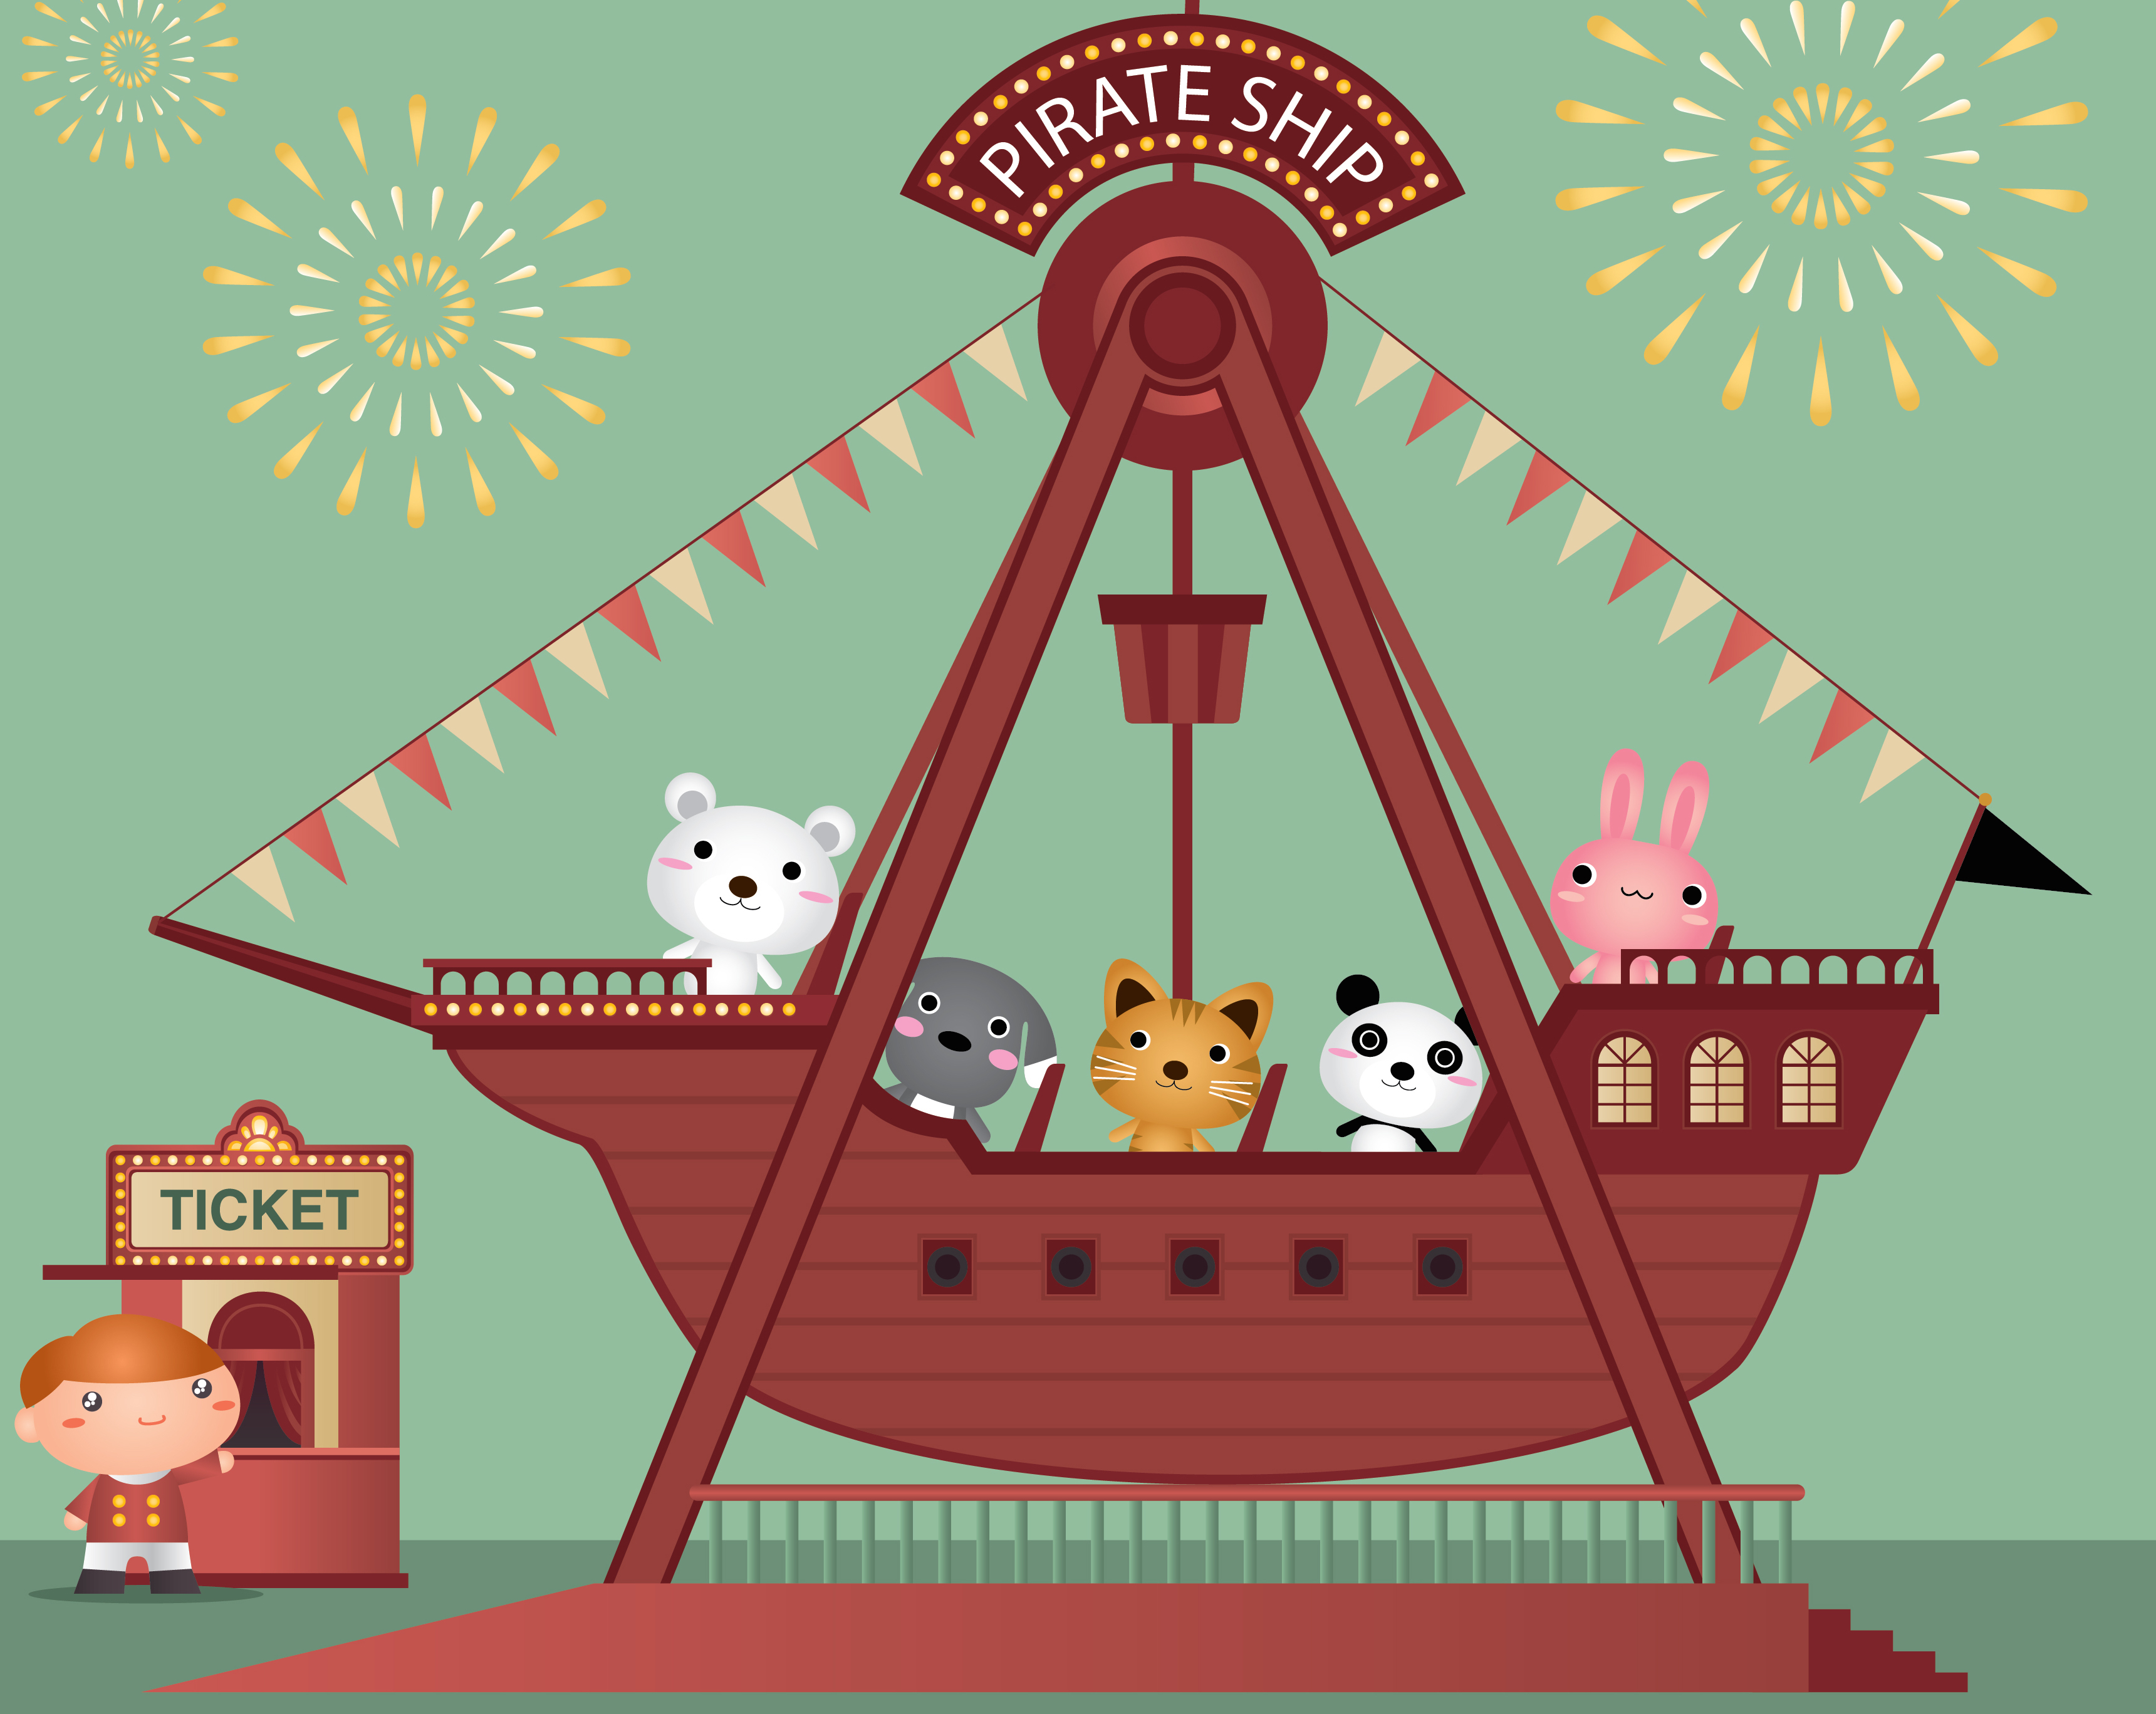 An ode to the Pirate Ship, my favorite carnival ride.